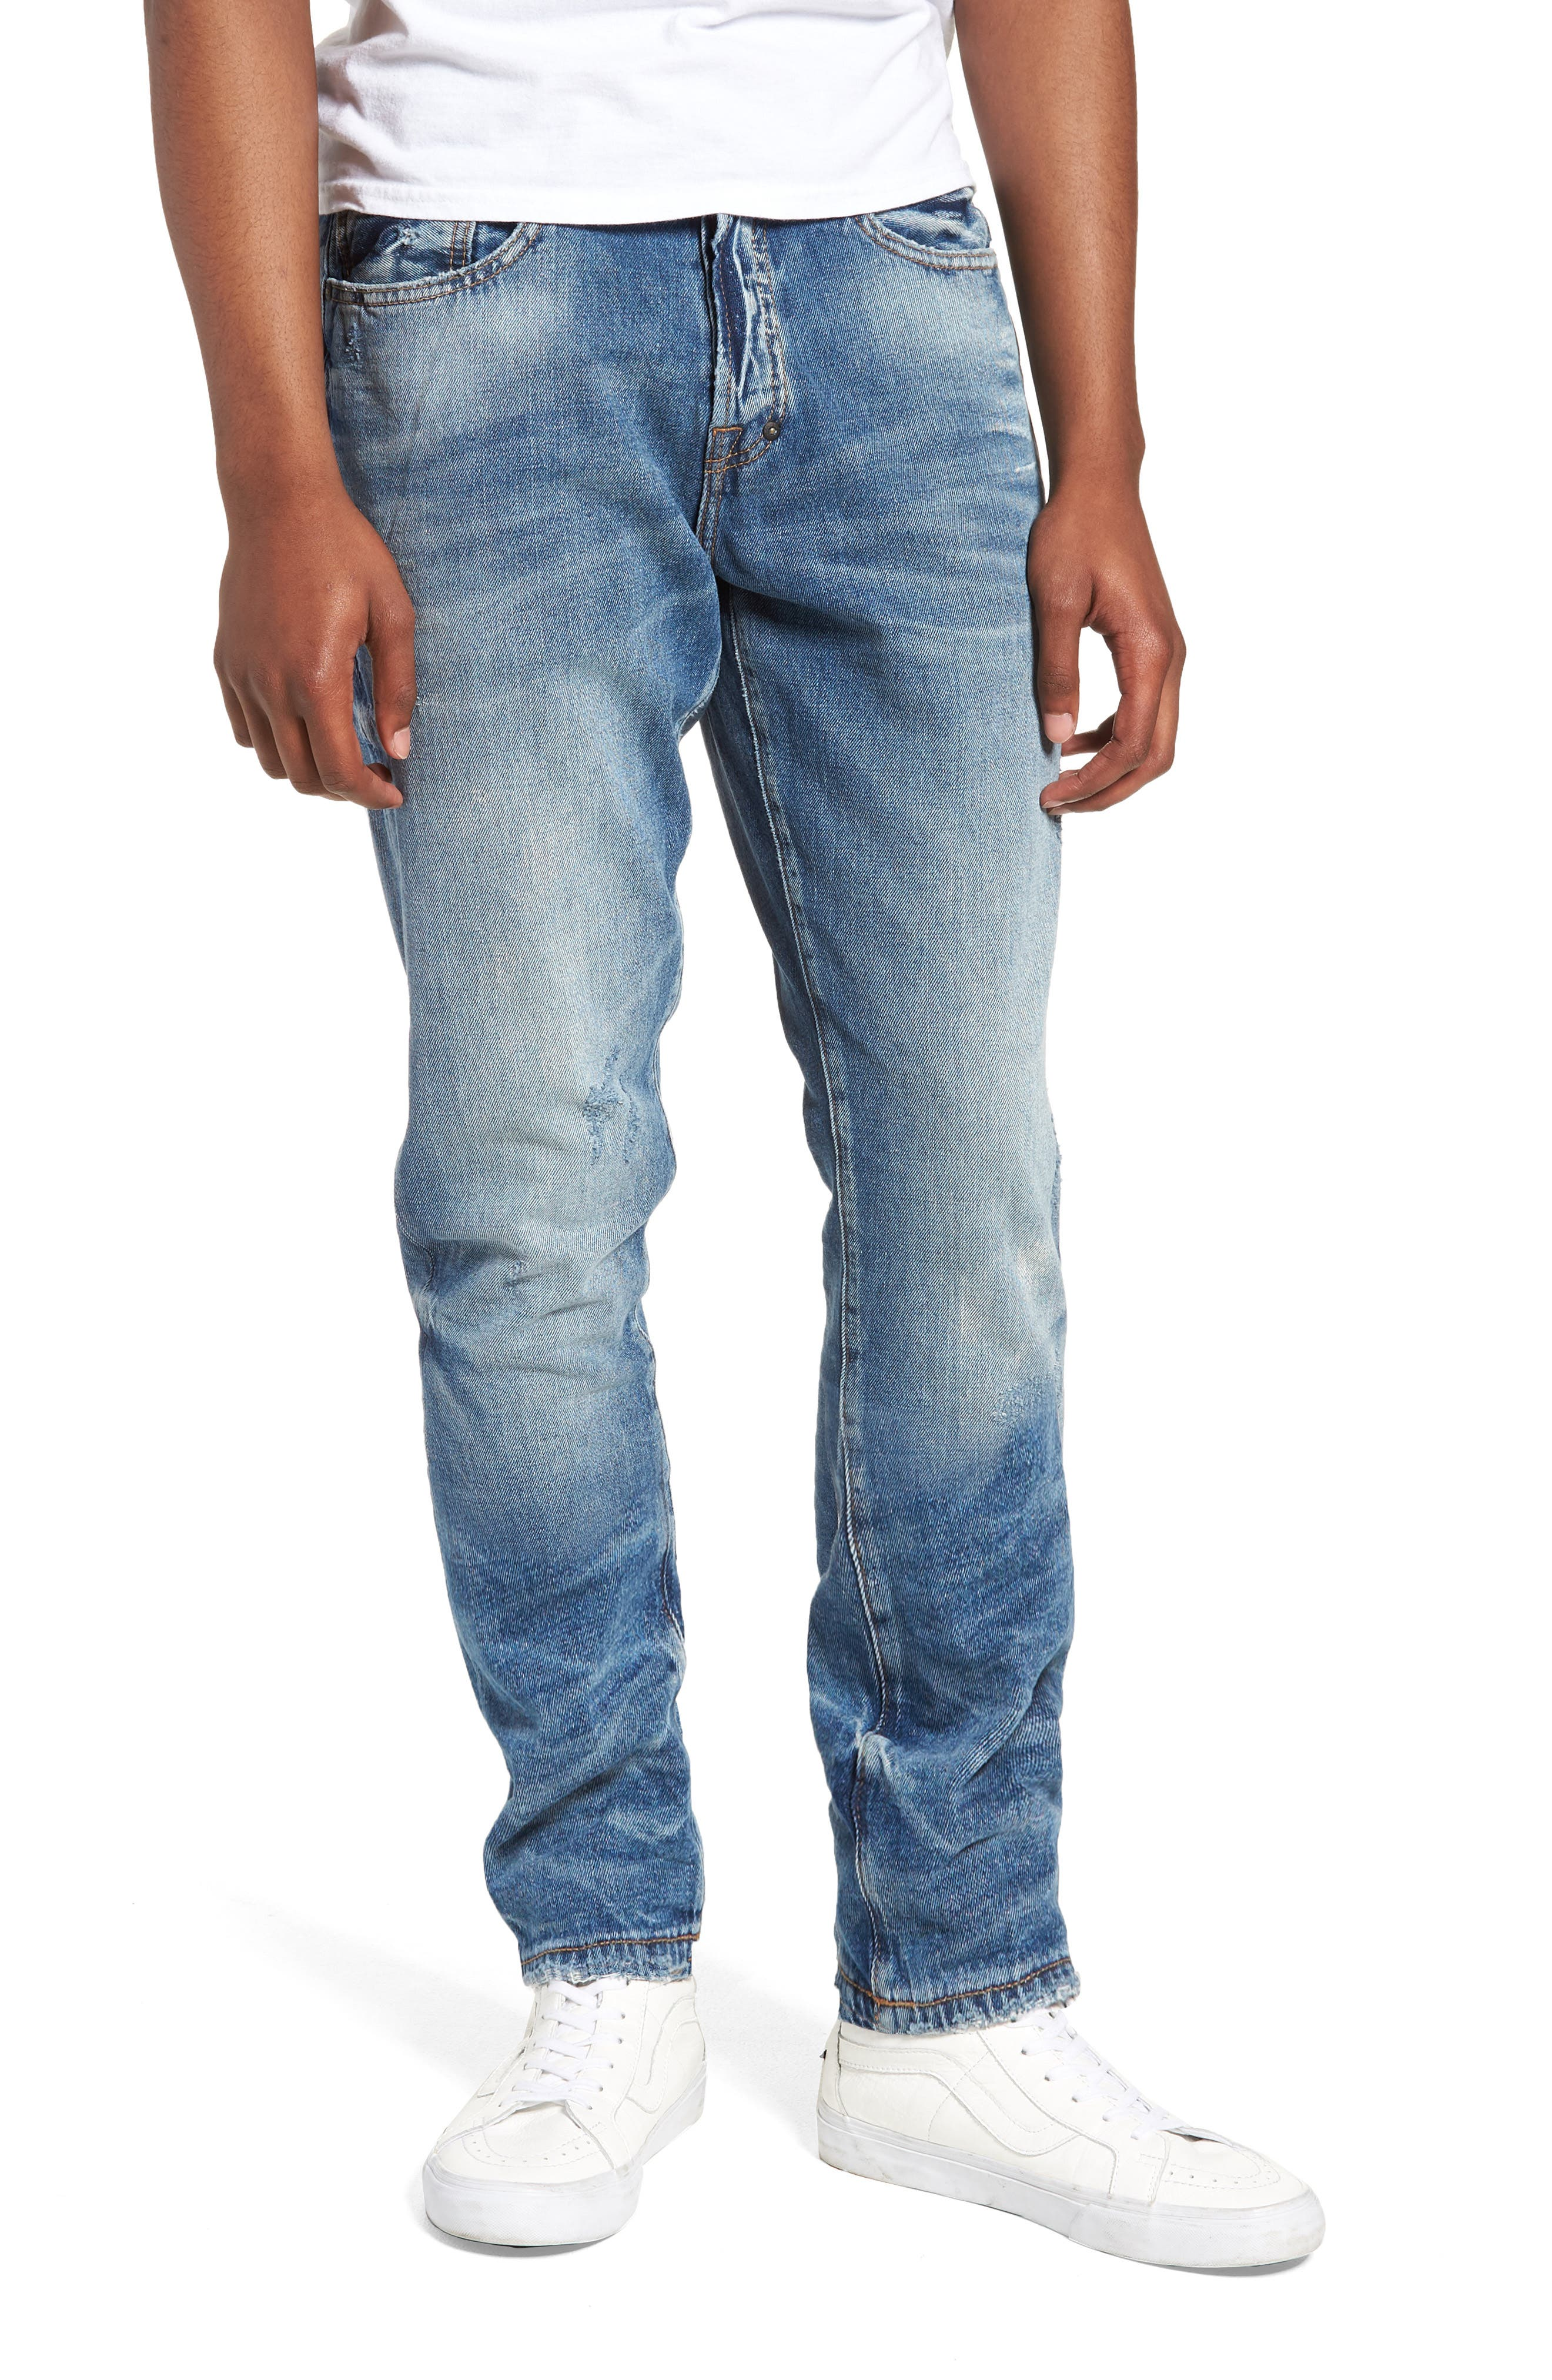 Le Sabre Tapered Fit,                         Main,                         color, 5 Year Wash